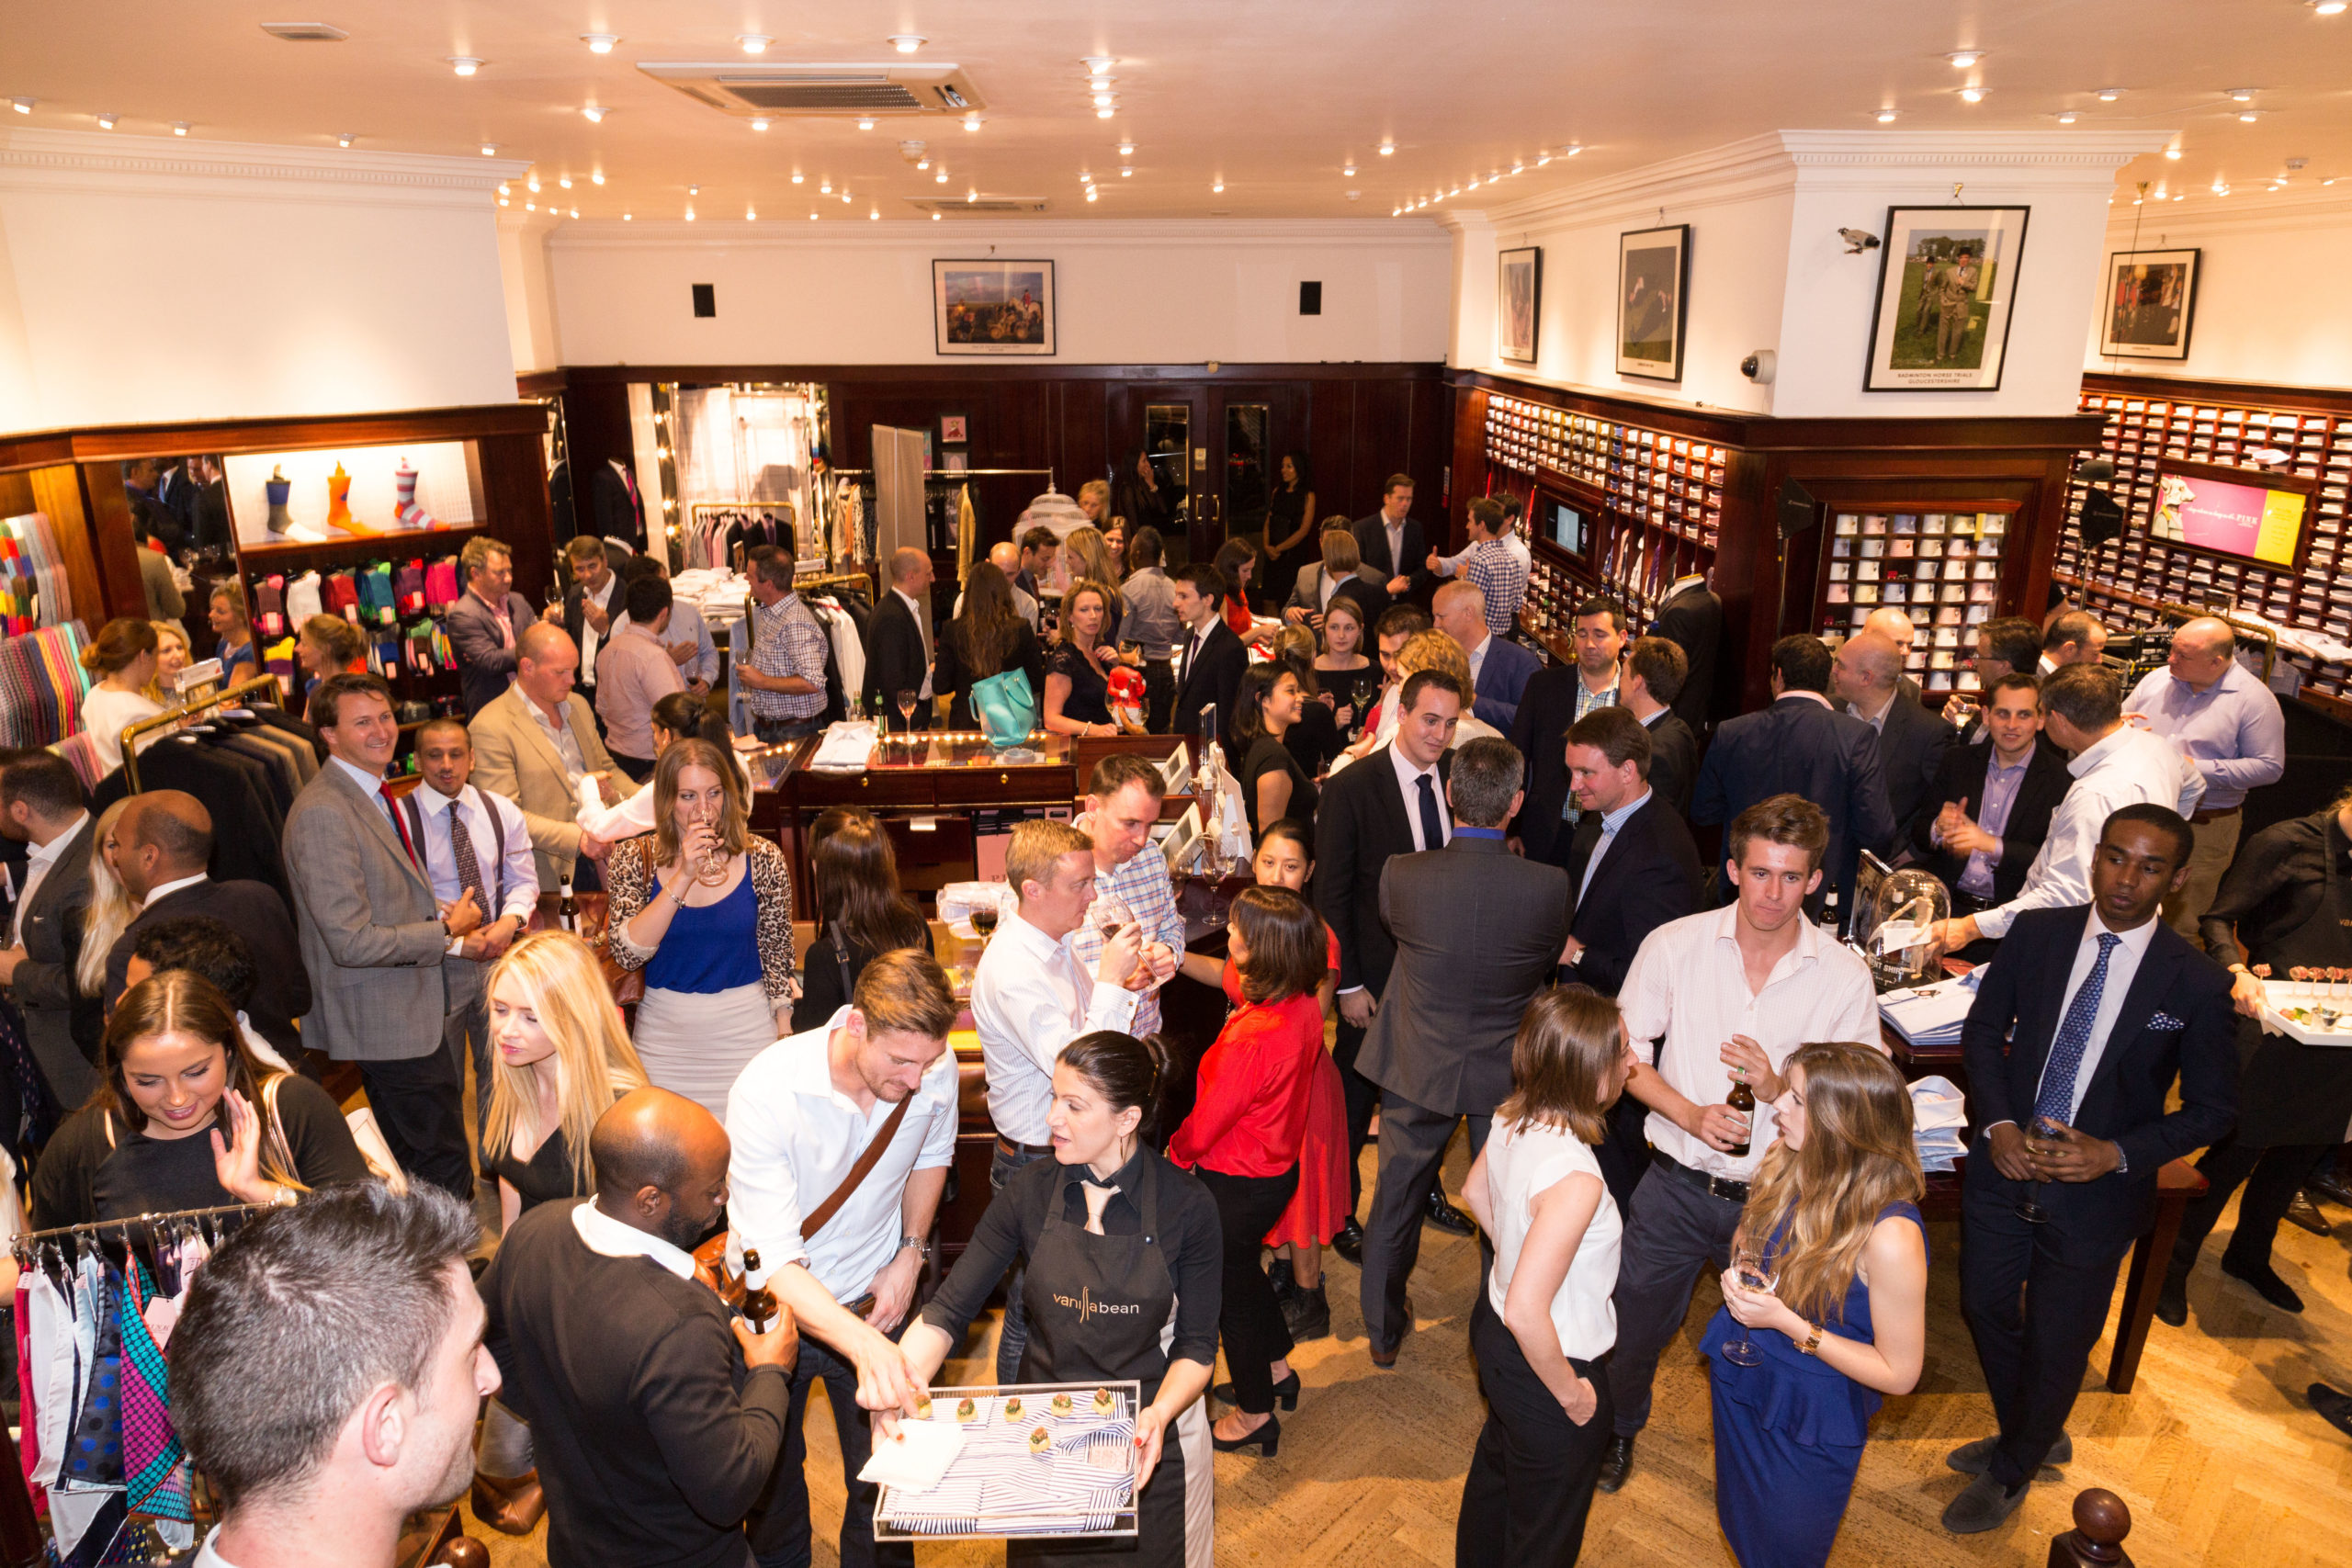 Guests mingle at a Thomas Pink Corporate networking event